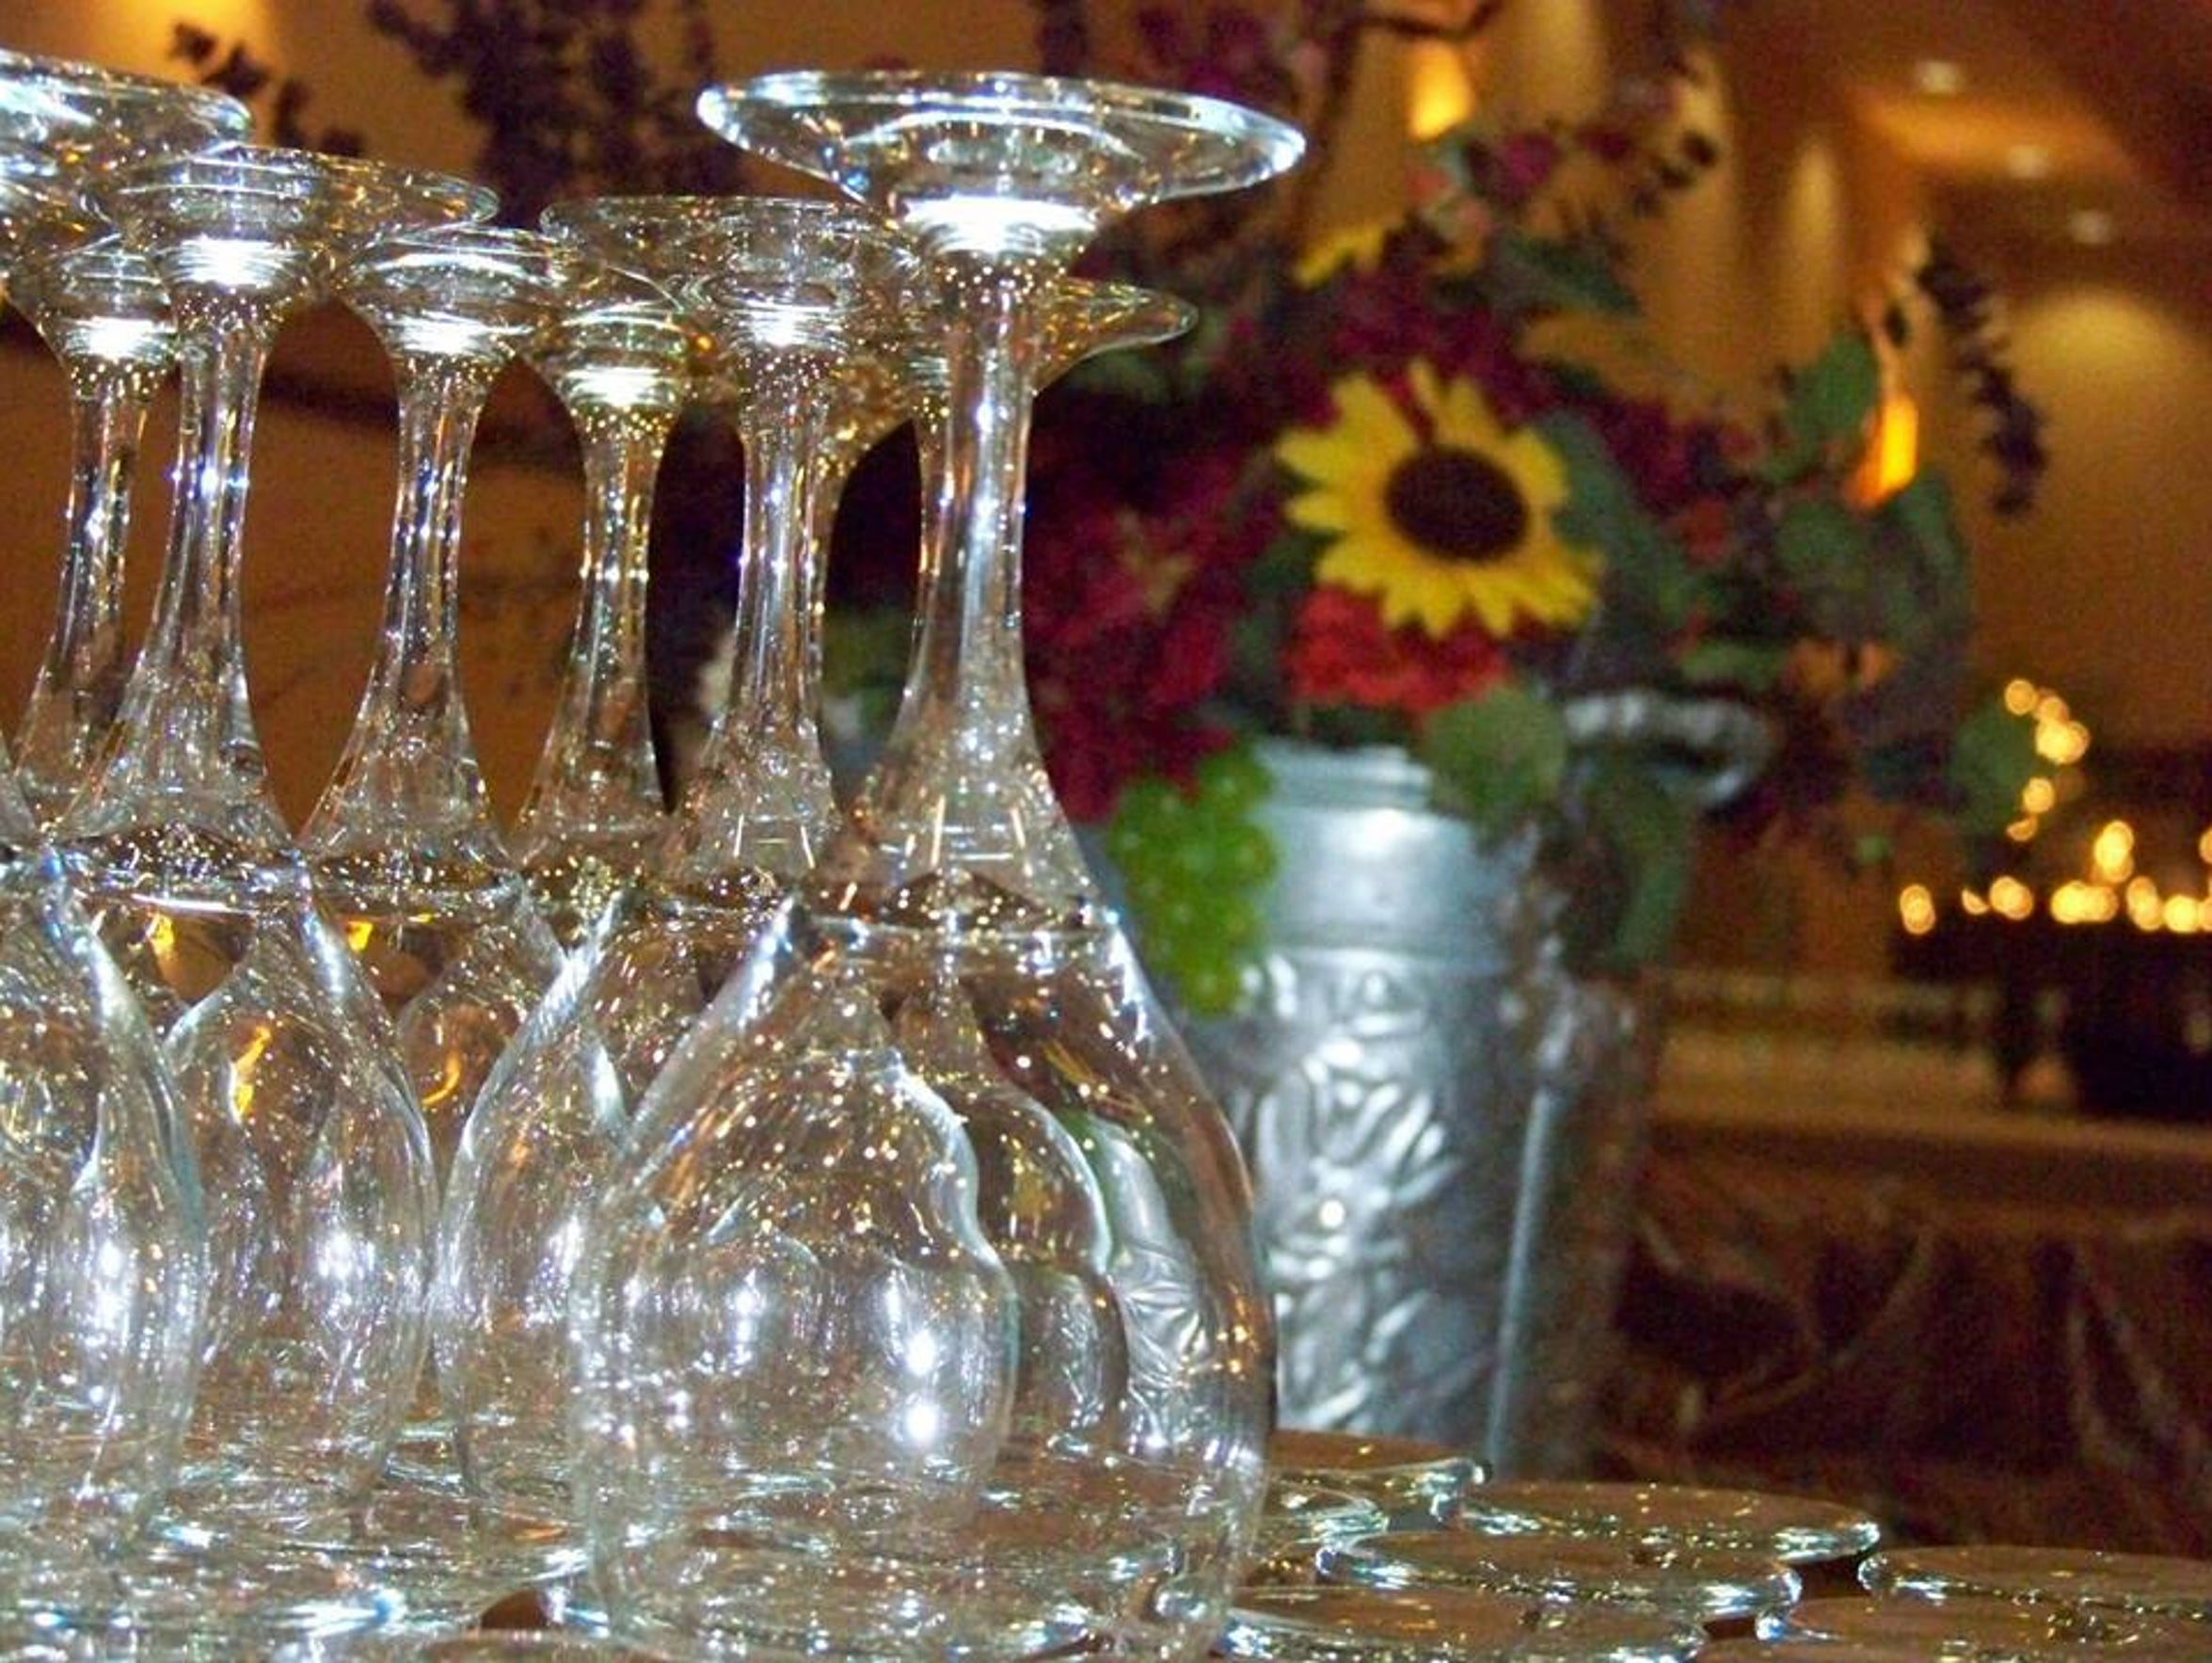 The 15th annual Wines of the World will be held at